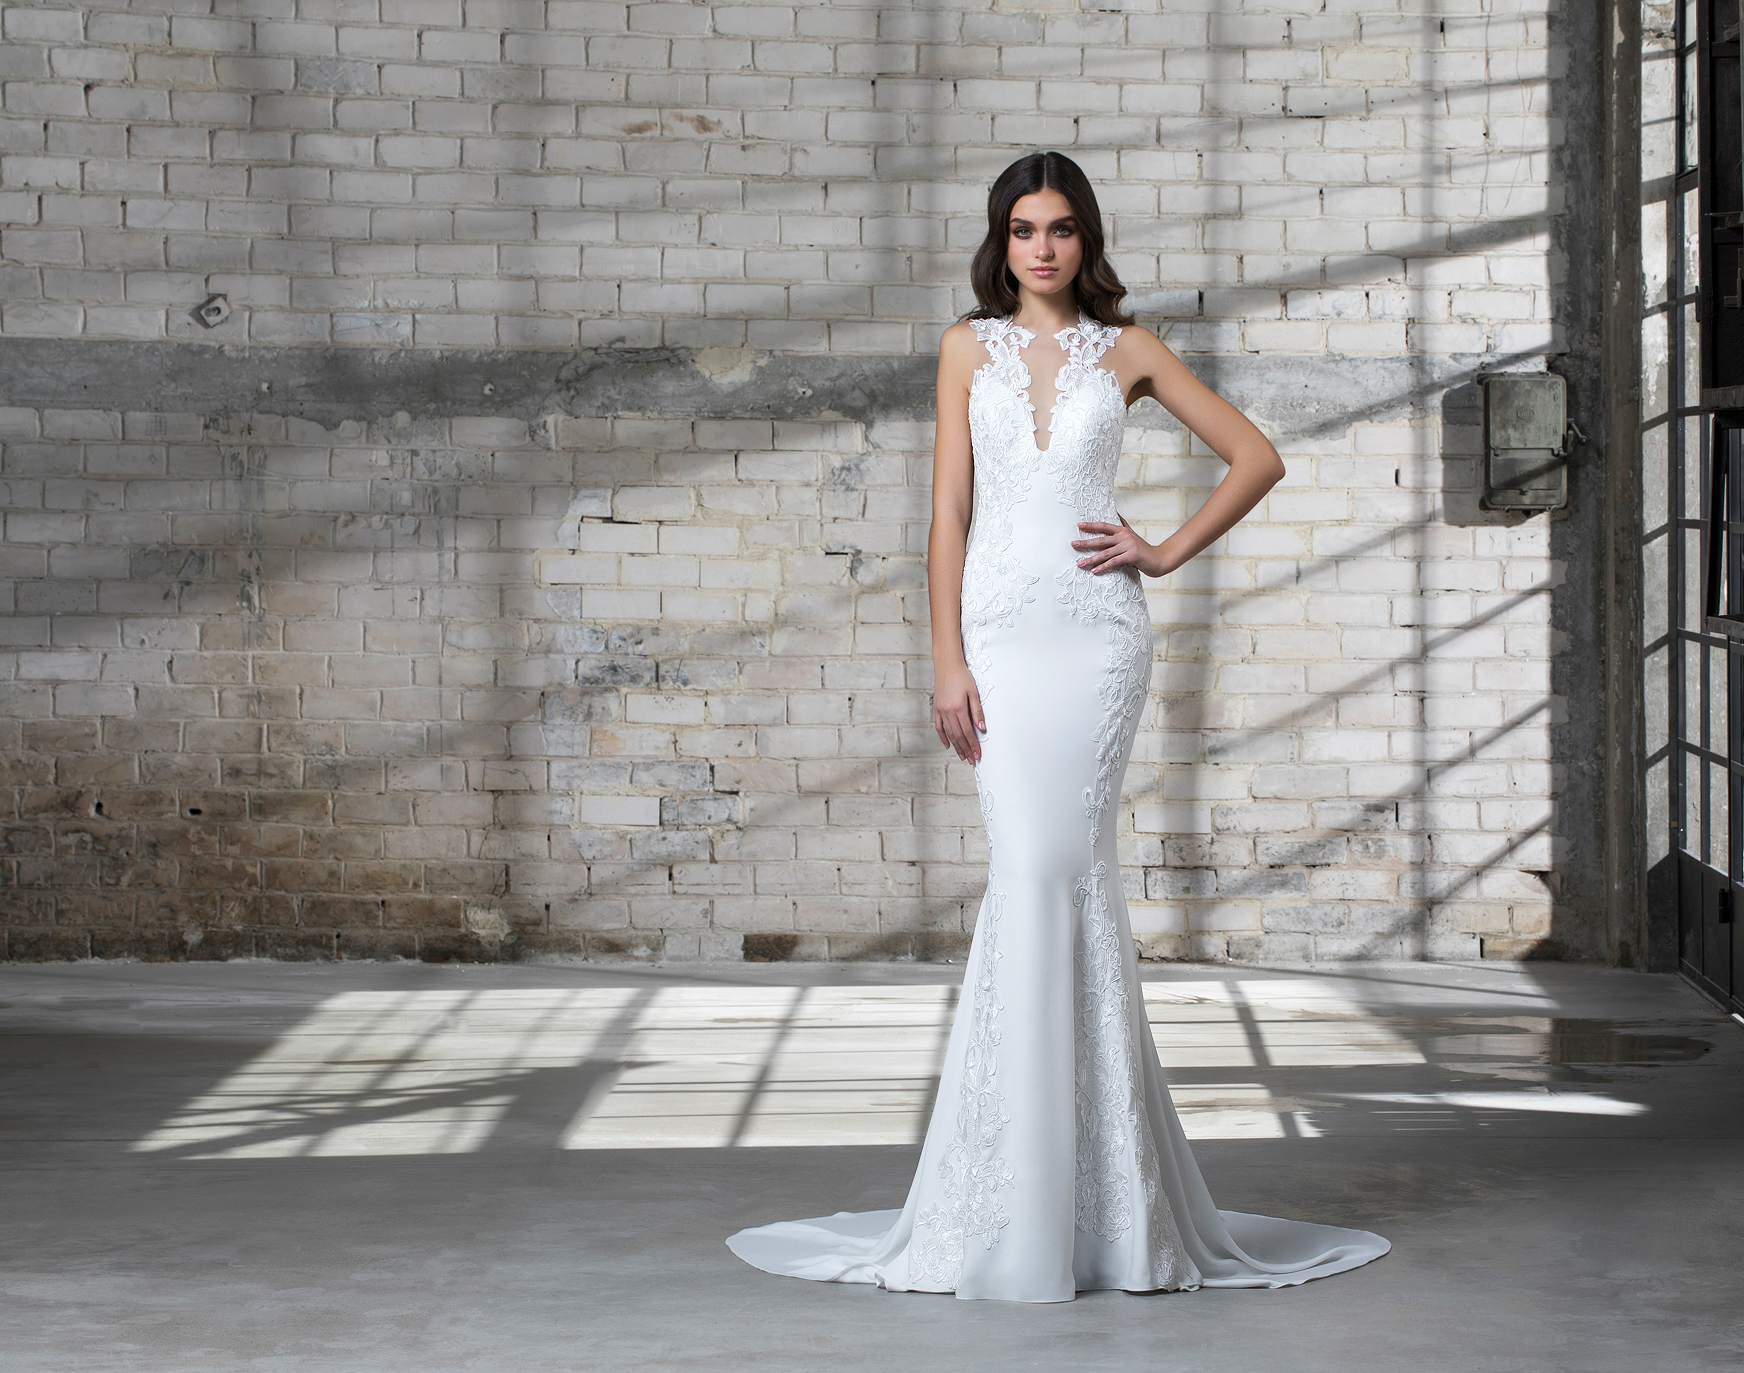 pnina tornai wedding dress spring 2019 lace sleeveless trumpet